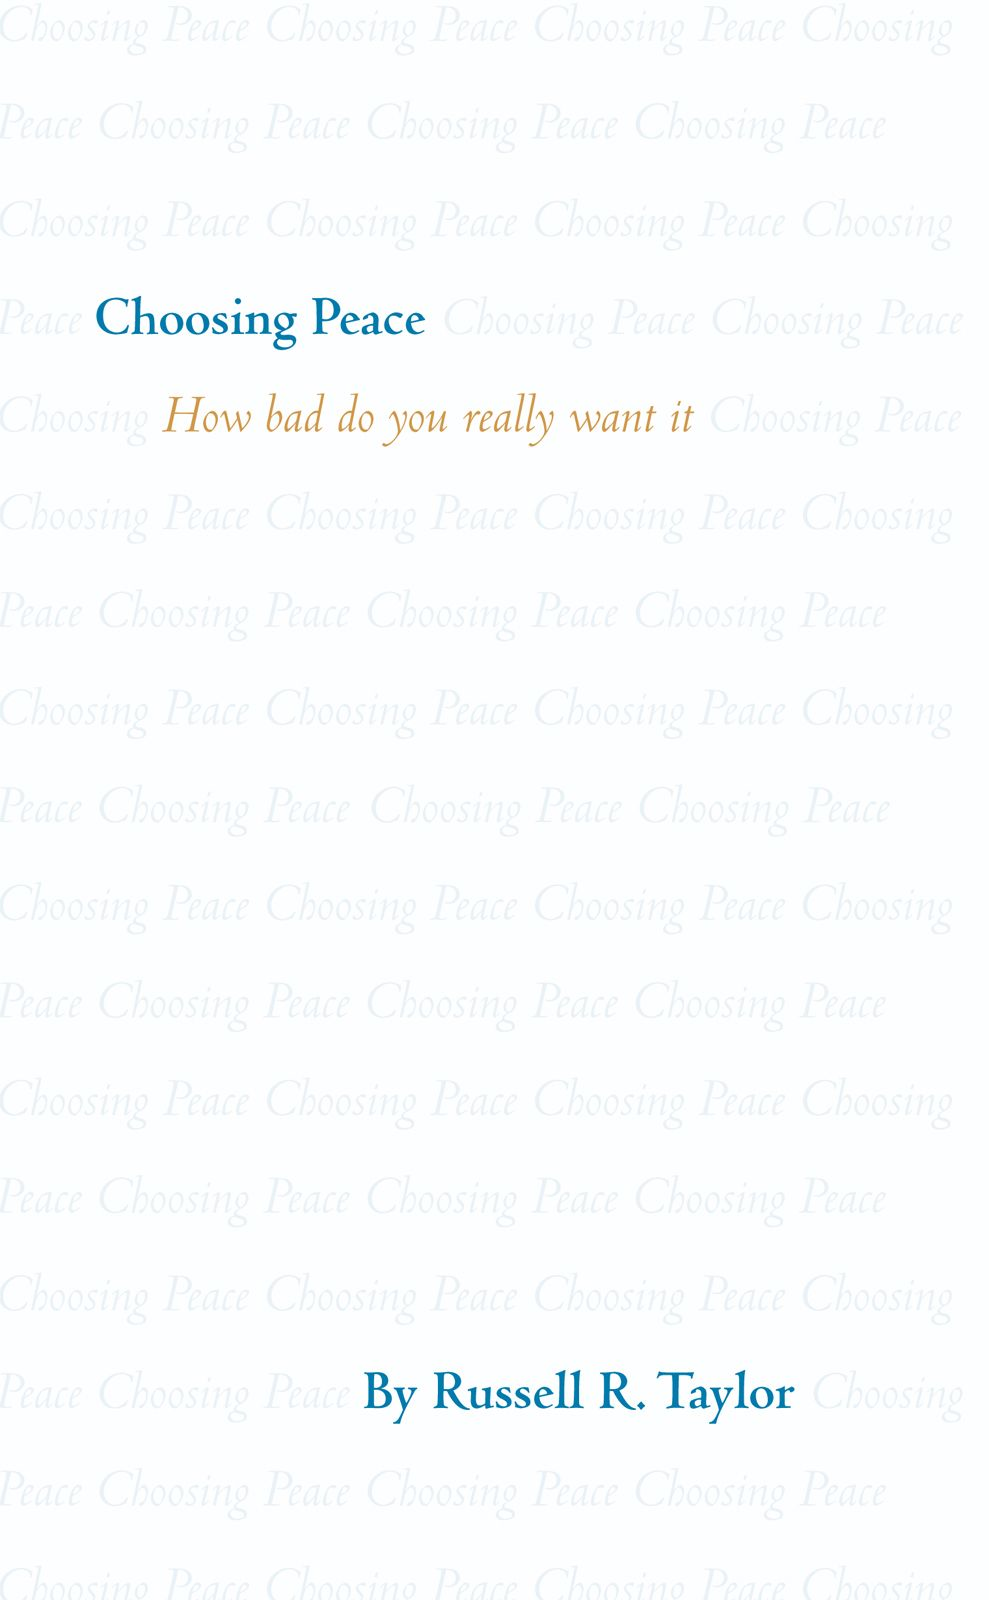 Choosing Peace By: Russell R. Taylor